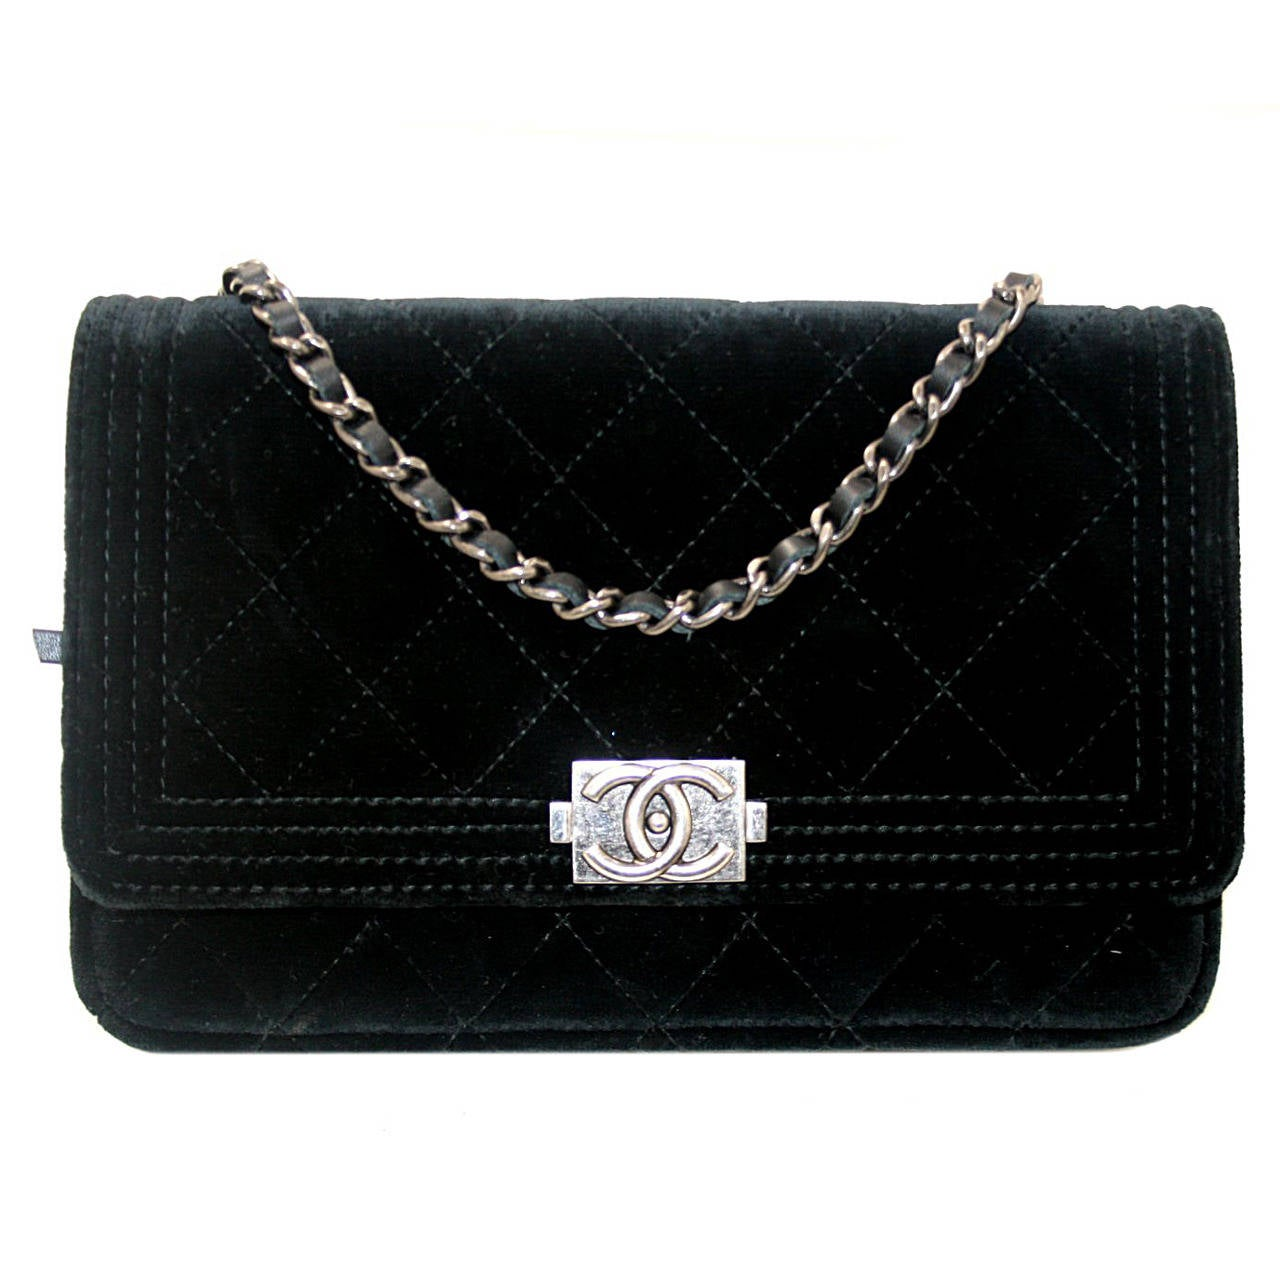 Chanel Black Velvet WOC Boy Bag Wallet on a Chain Ltd. Ed. 1